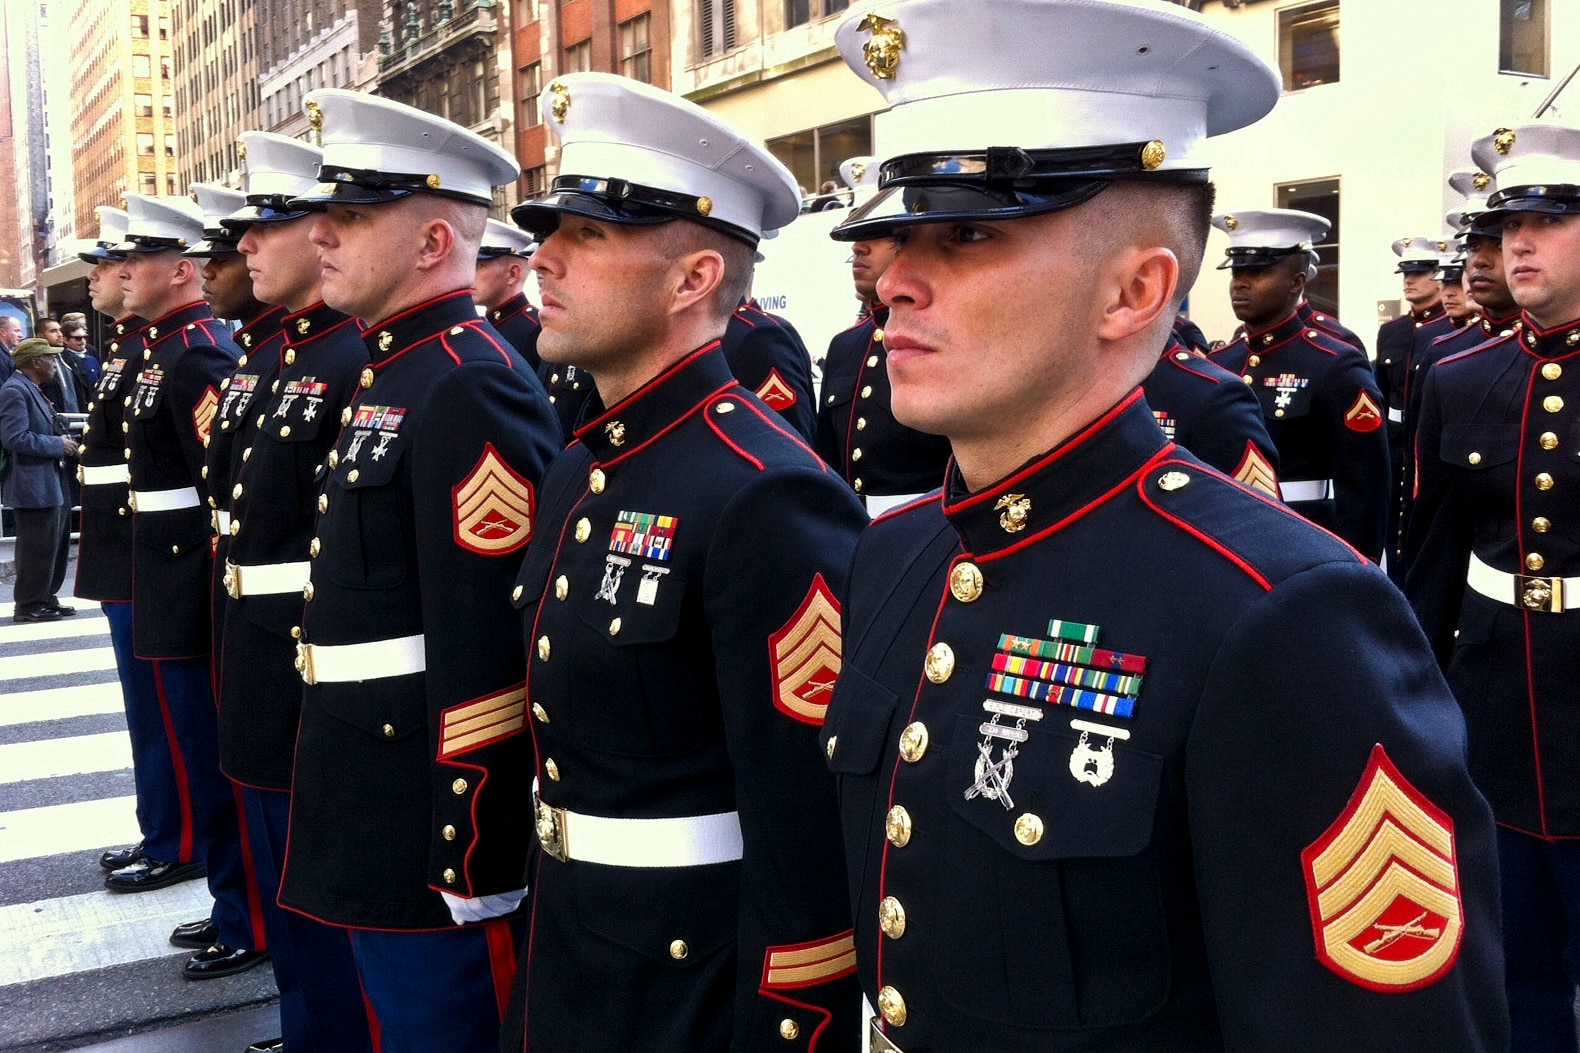 marine corps ranks enlisted and officer relationship